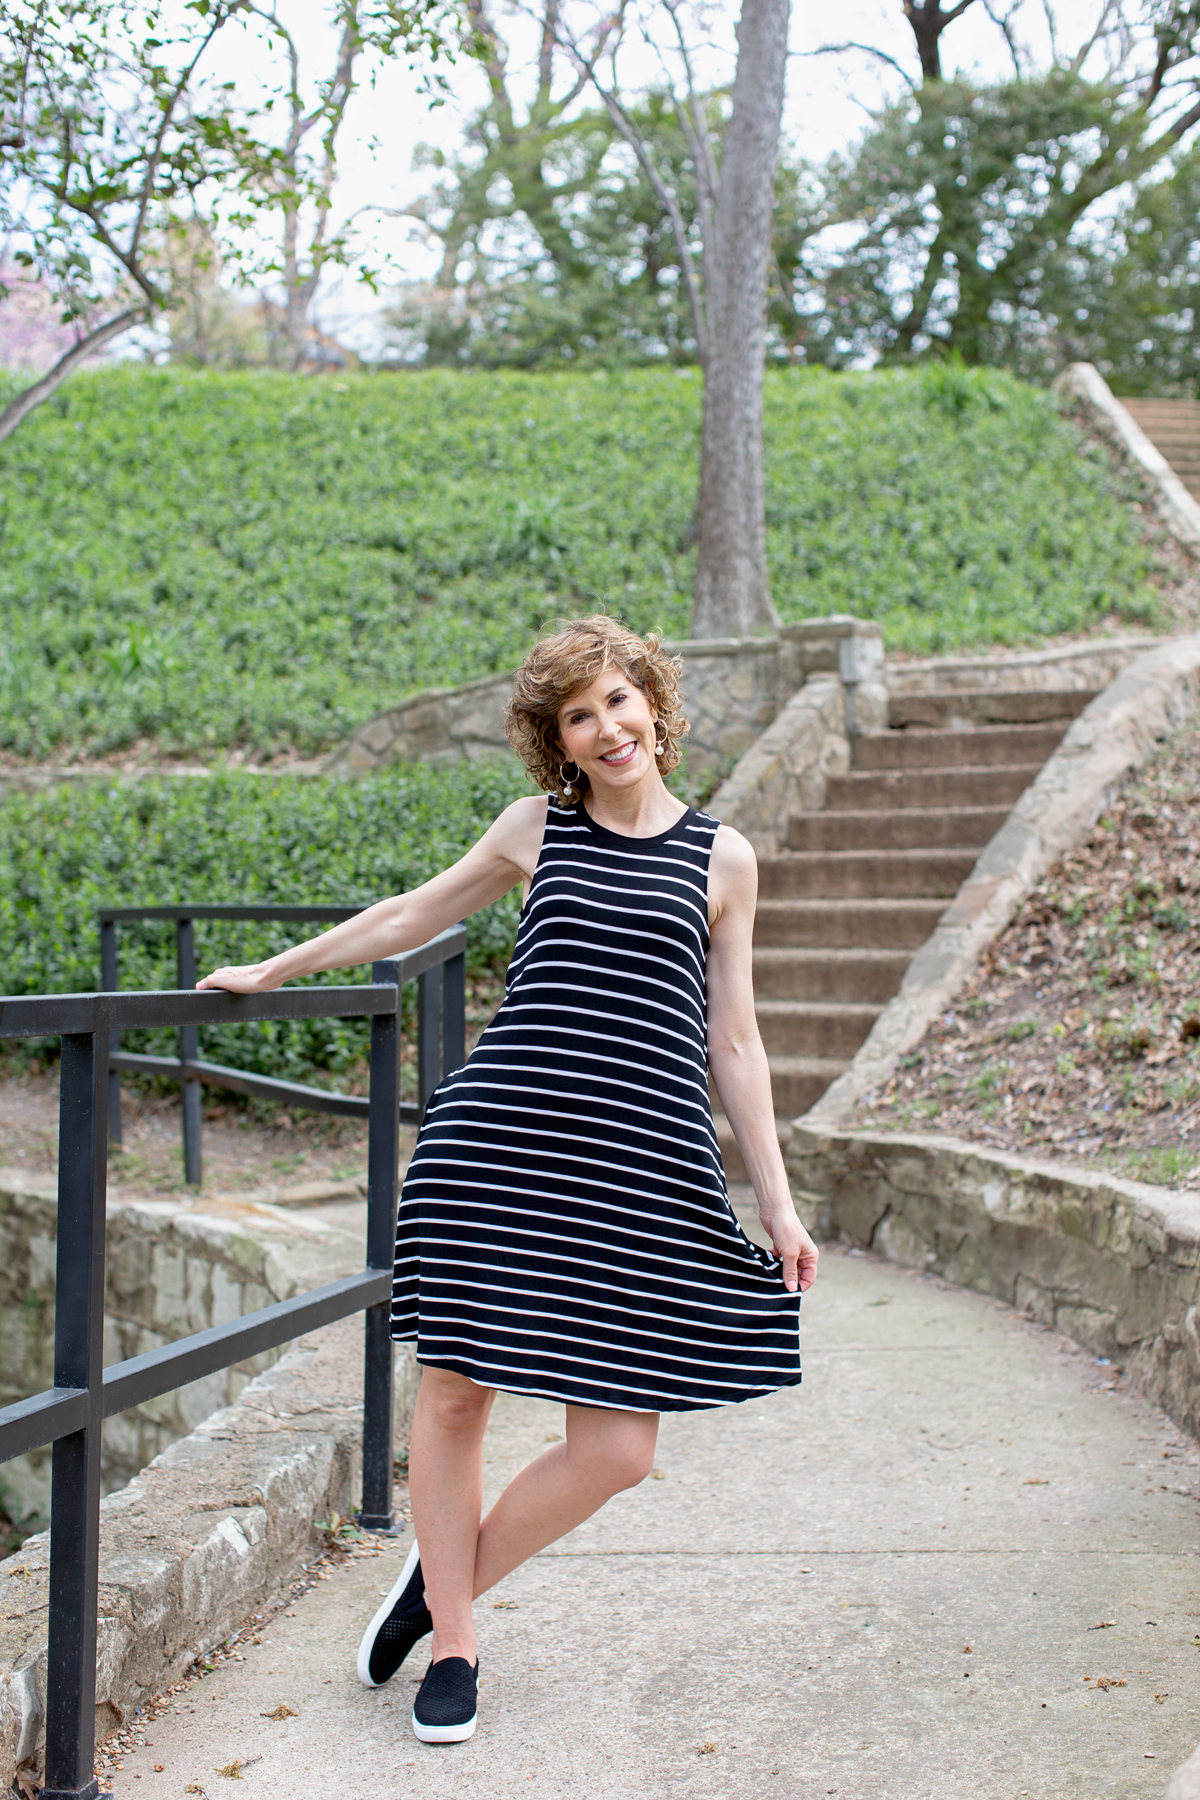 woman in black and white striped dress